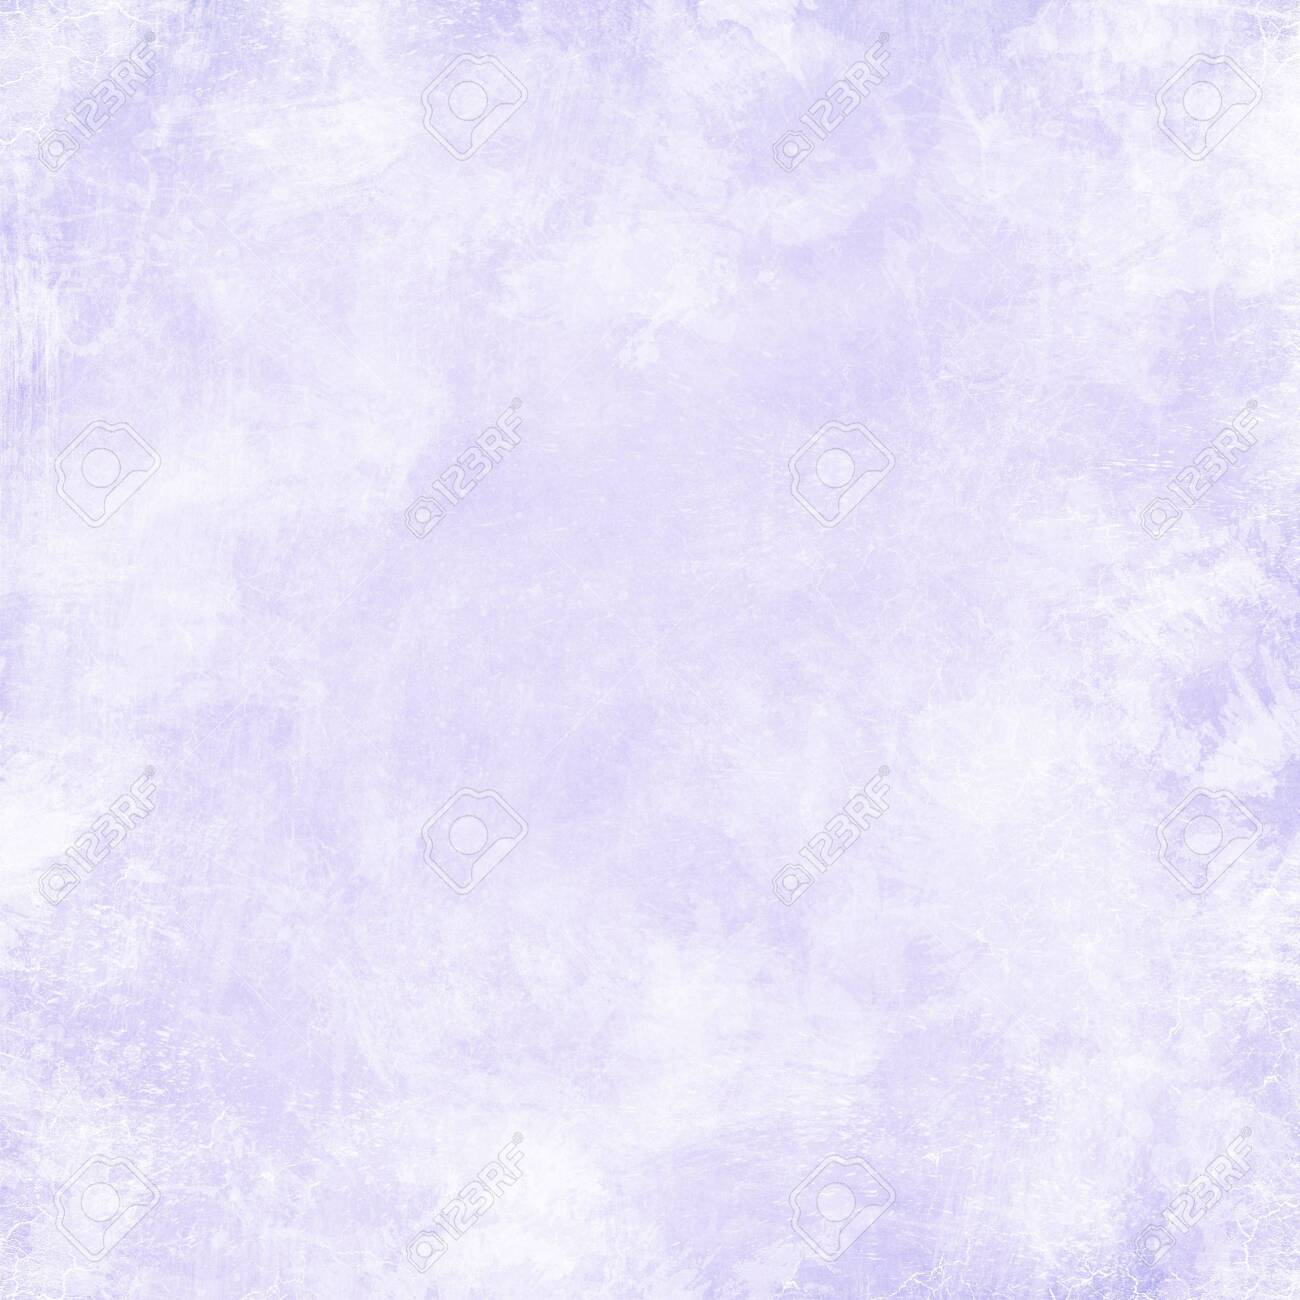 grunge abstract background - 140316443